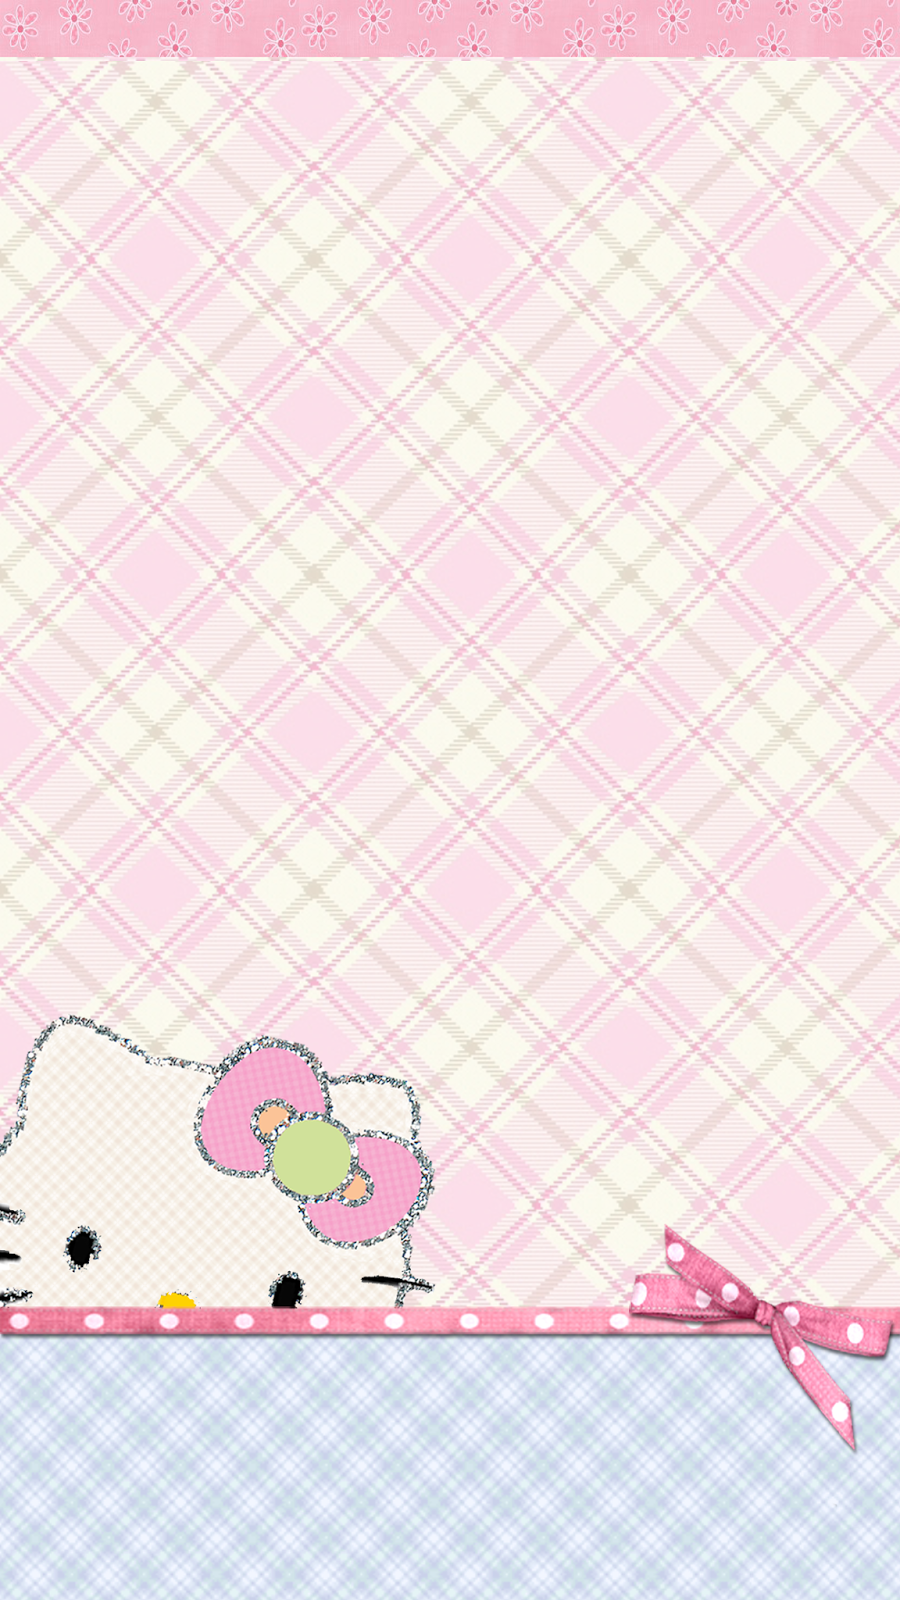 Amazing Wallpaper Hello Kitty Pastel - 237aa4a21303a2144ab31ffb4b2c9707  Perfect Image Reference_85653.png